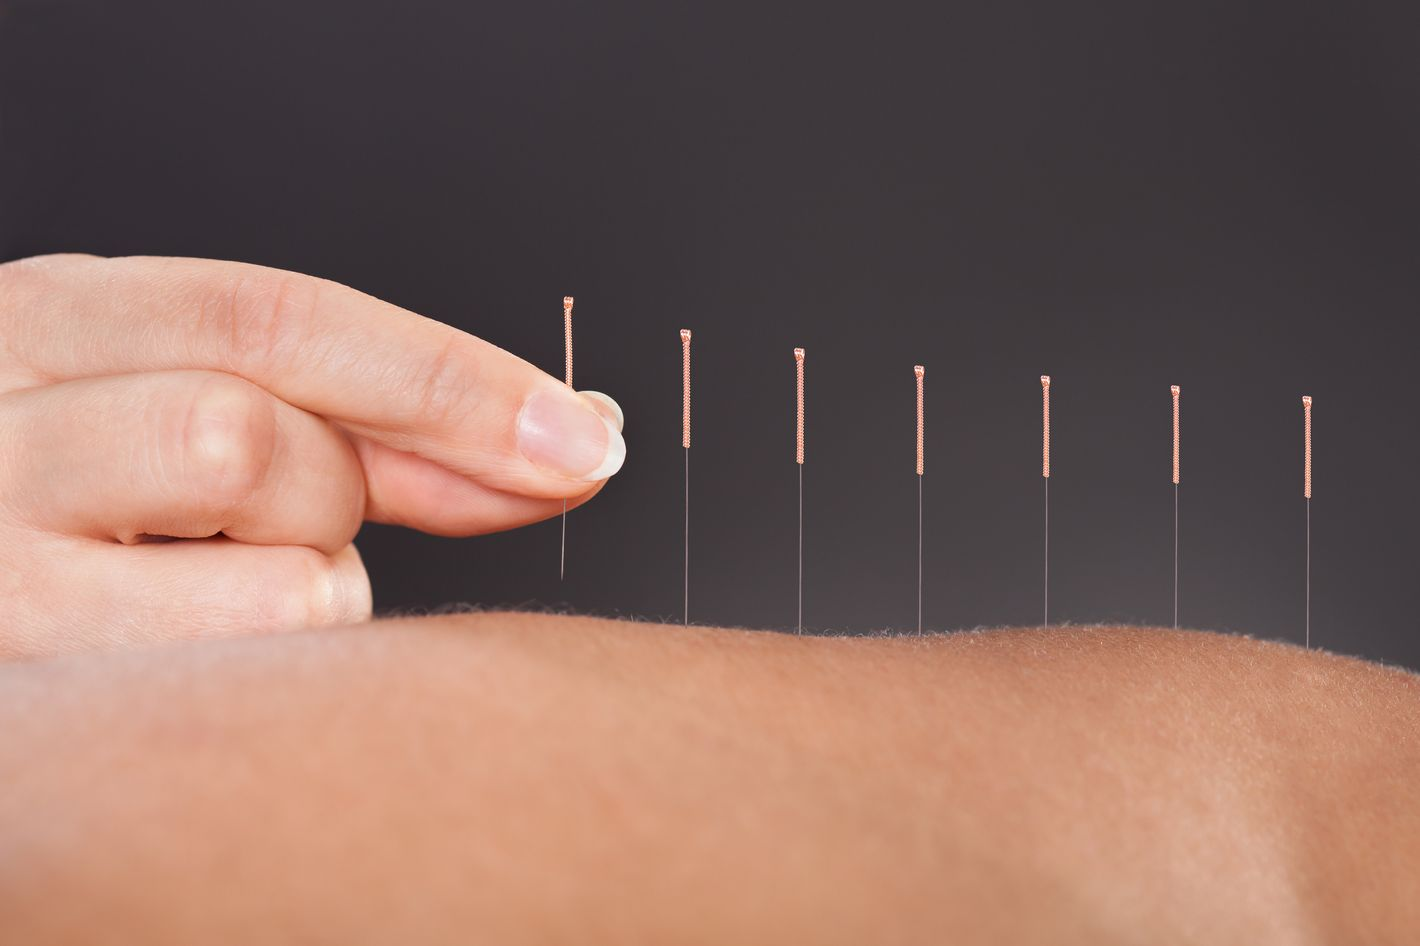 Acupuncture with Kelly Duigan